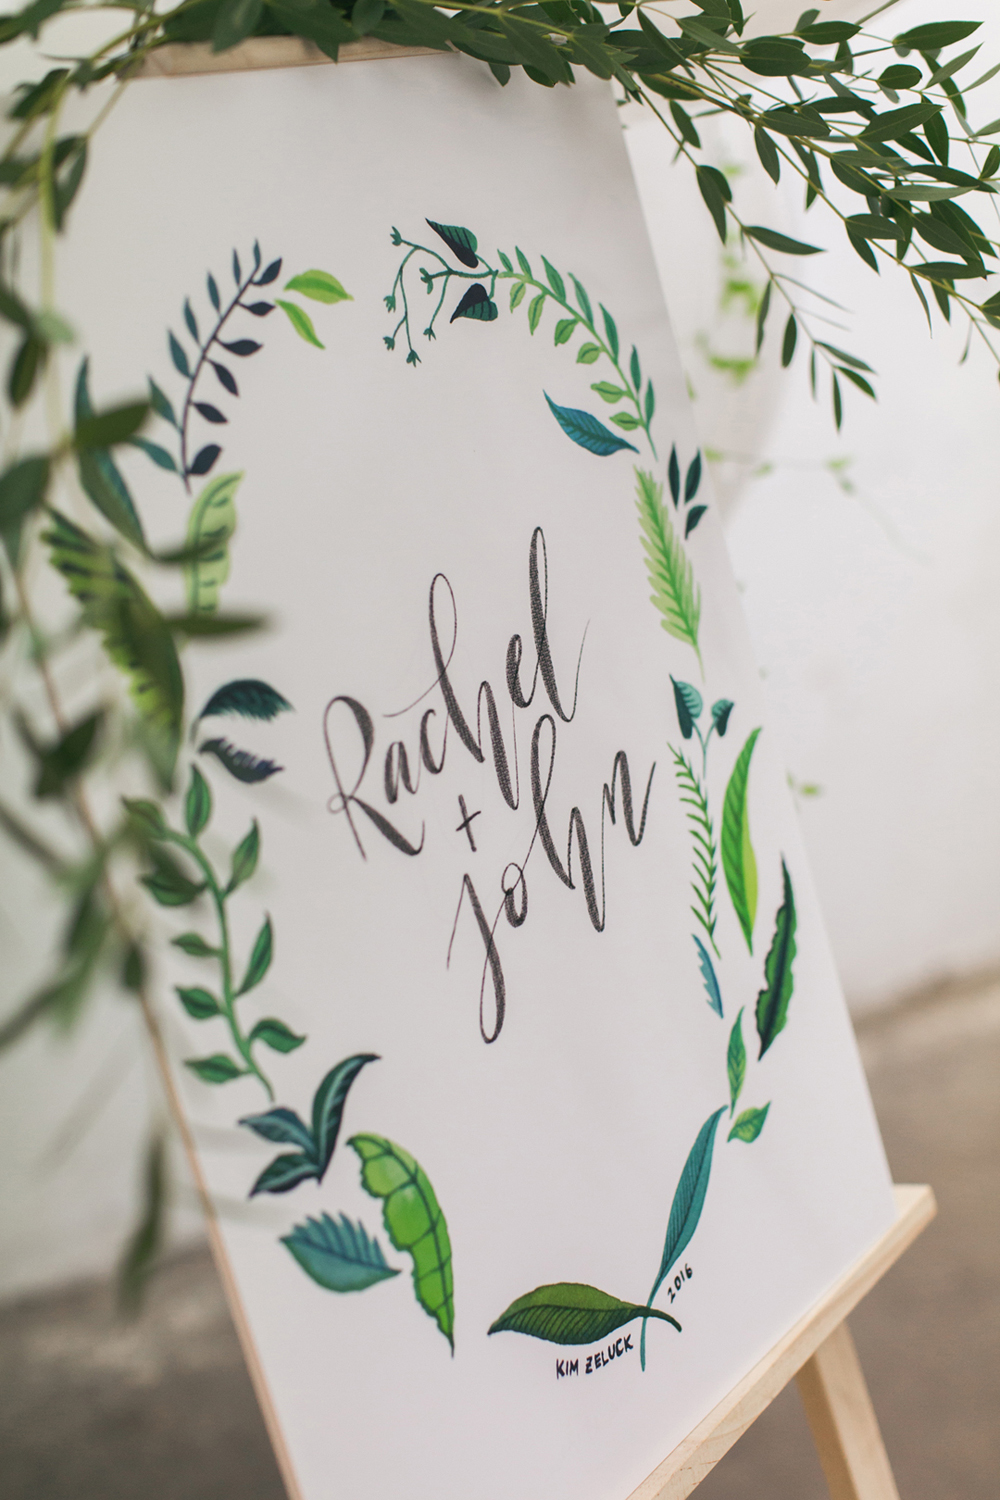 Rachel and John's wedding | Calligraphy stationery design by Kim Zeluck